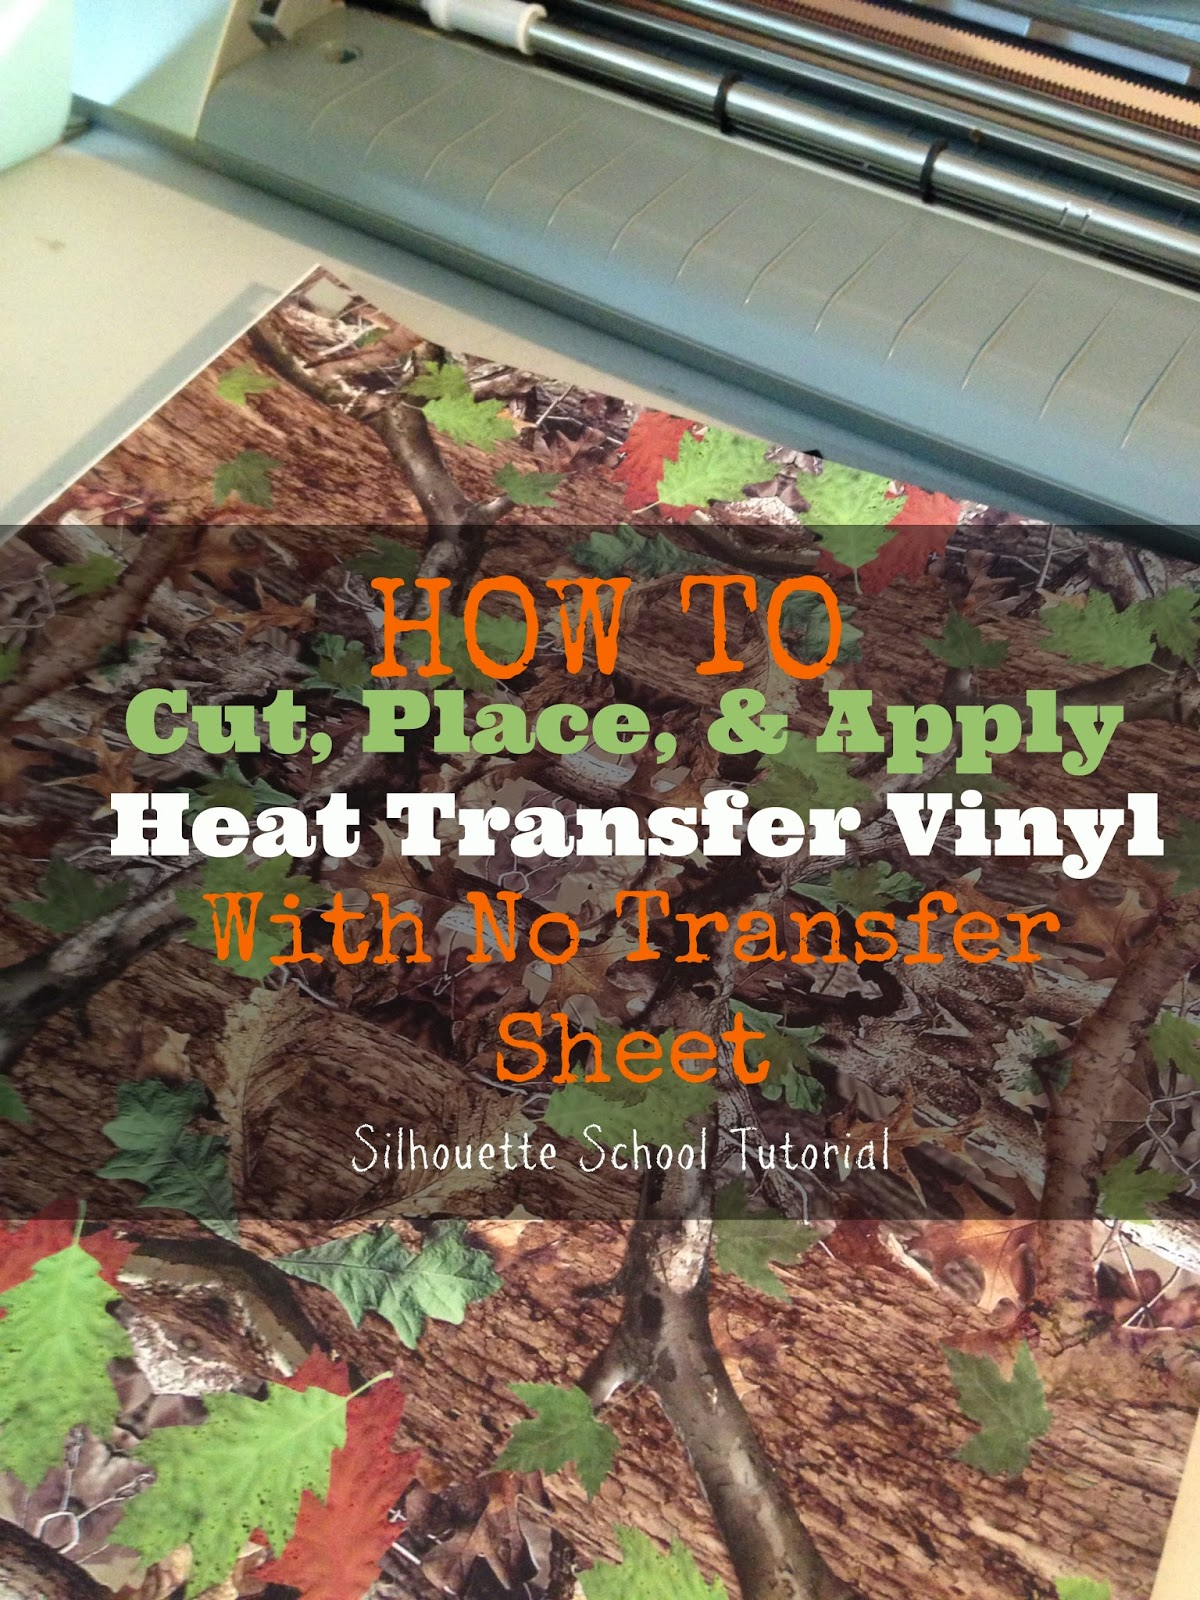 Silhouette tutorial, HTV, heat transfer vinyl, no transfer sheet